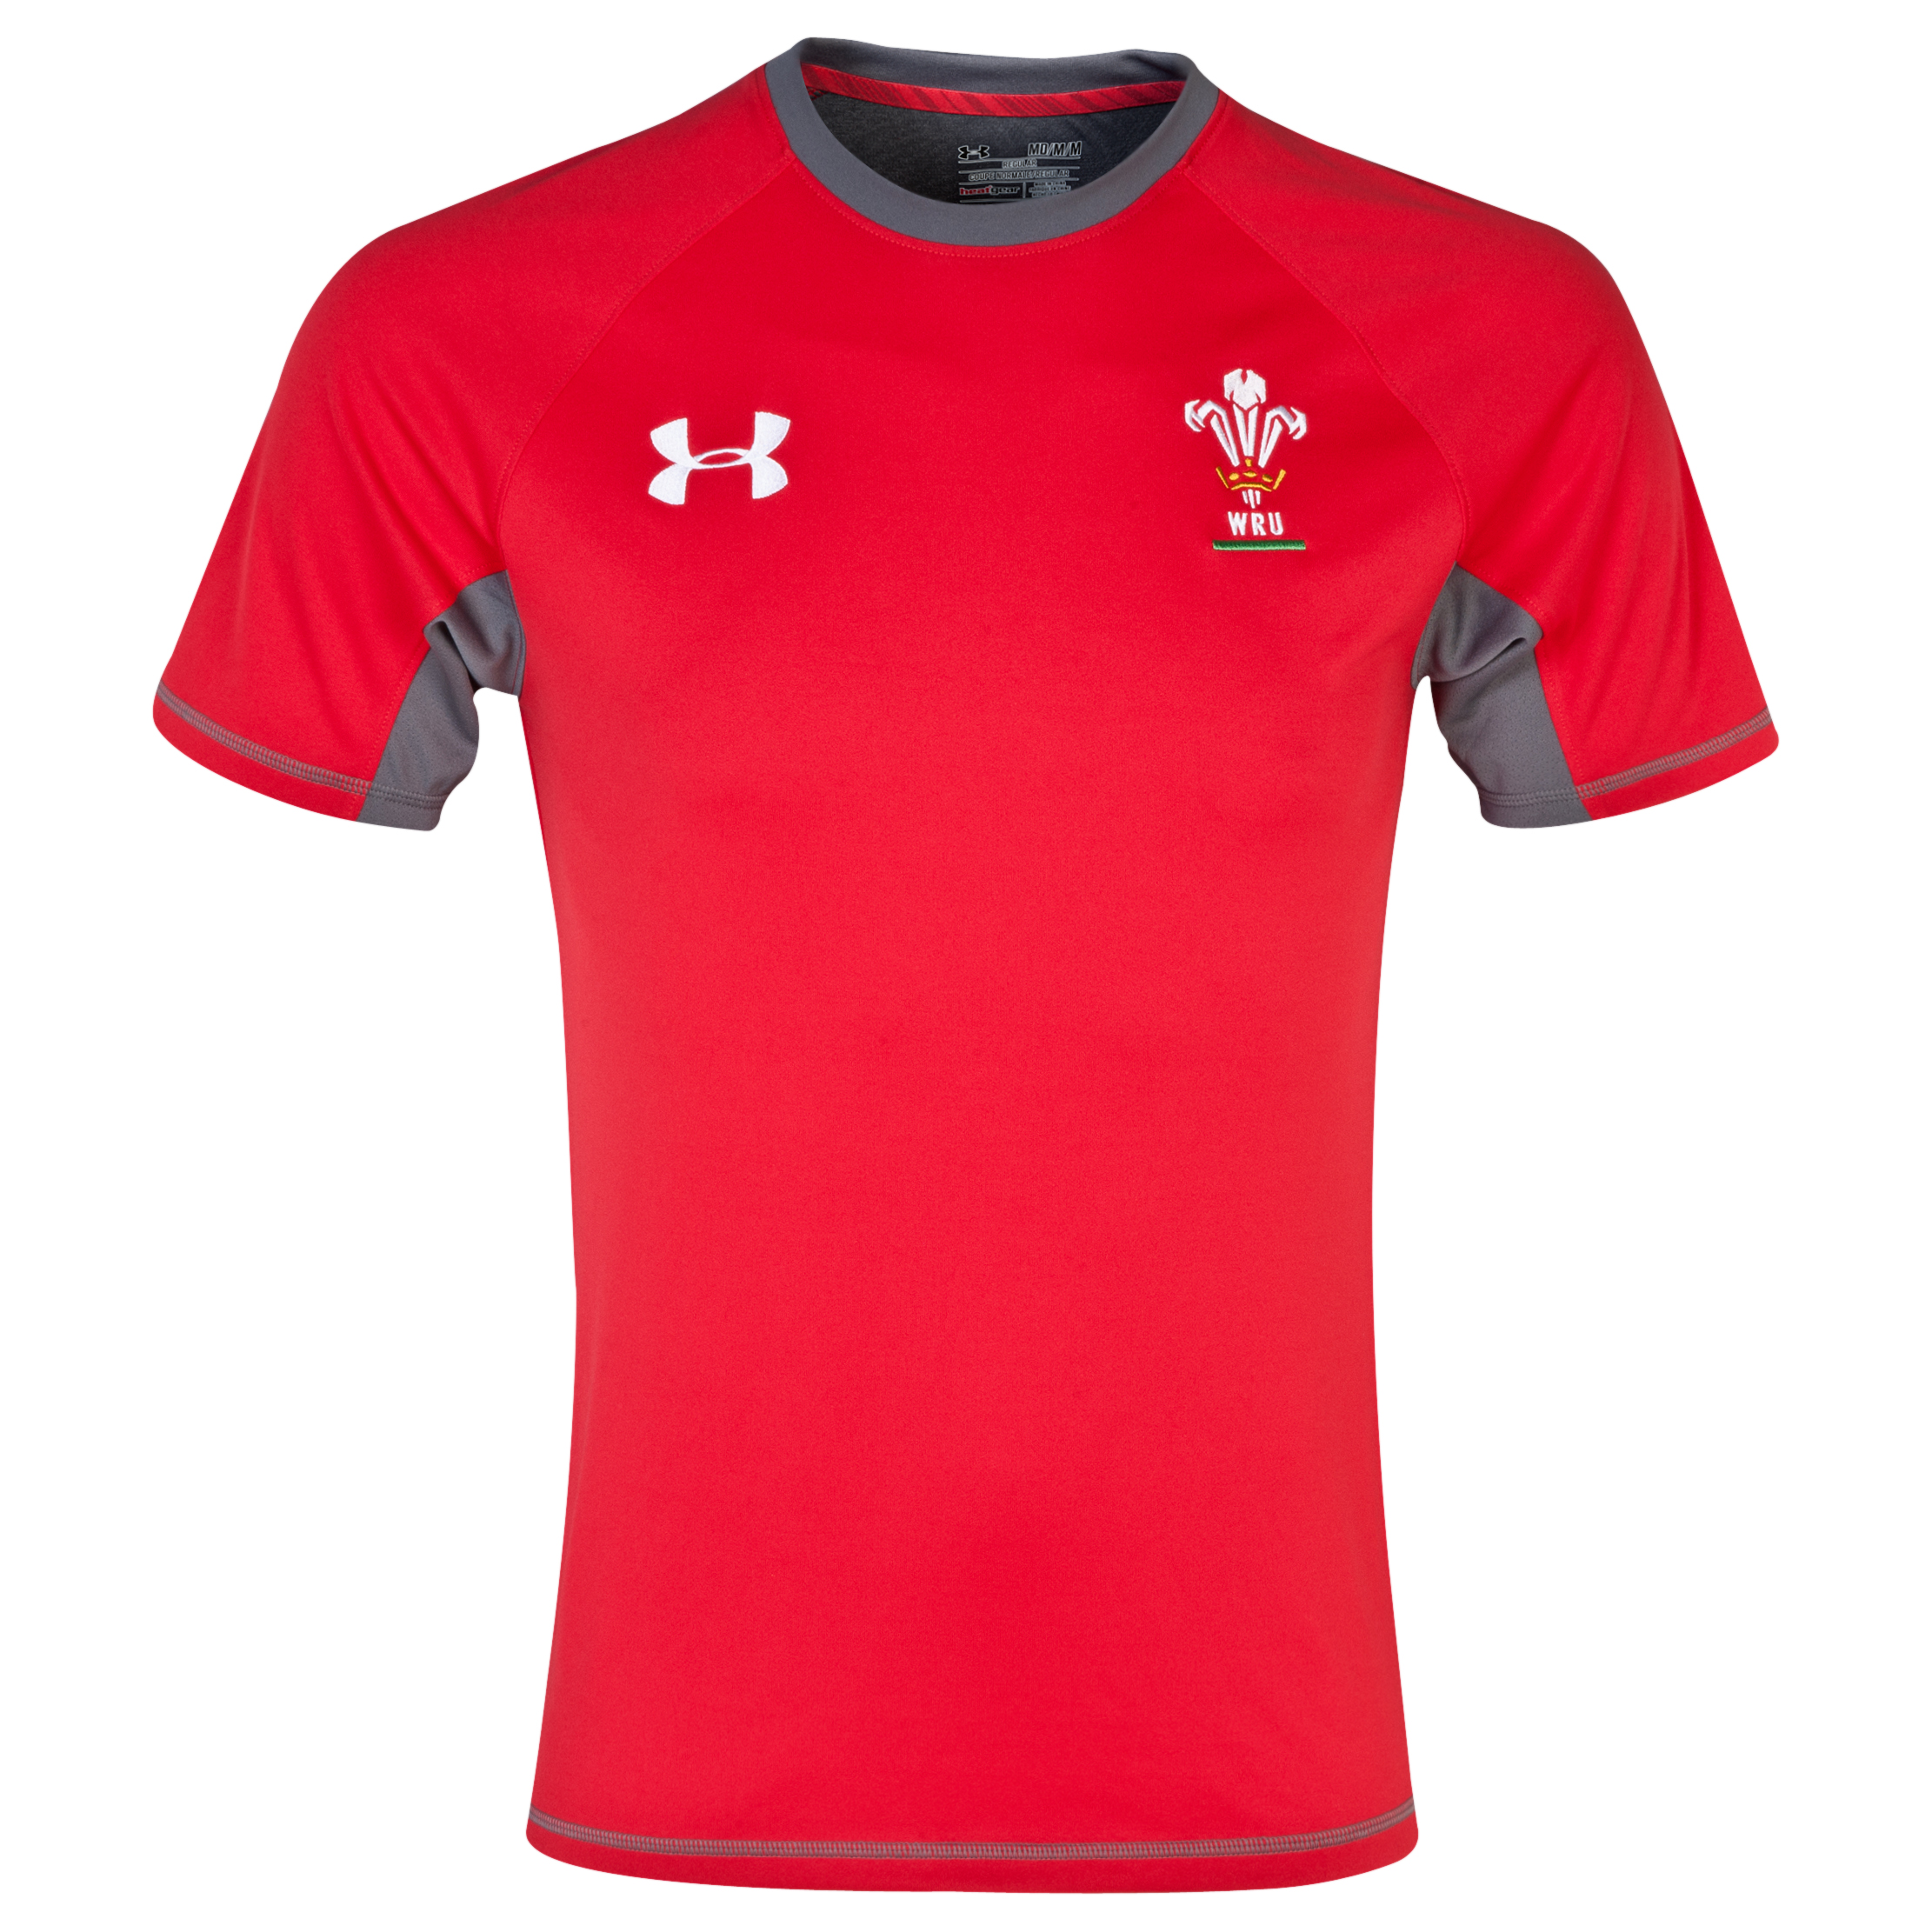 Wales Rugby Union Training T-Shirt 2013/15 - Red/White